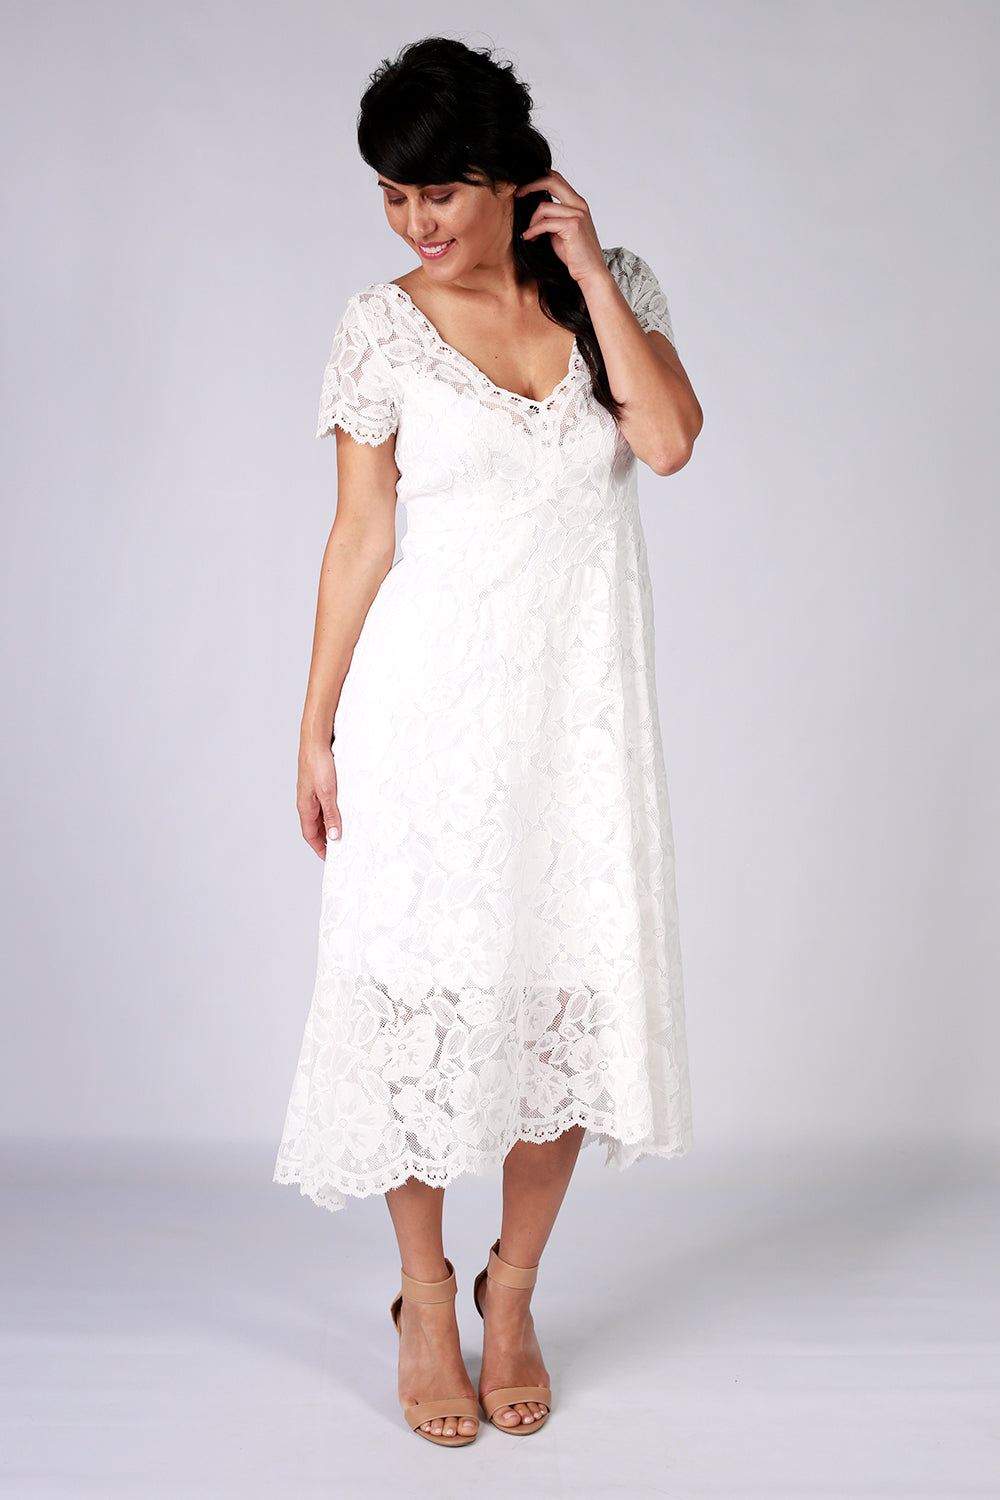 Moon Flower Dress | Lace Dress | New Zealand Fashion Designer | Annah Stretton | Wedding Dress | Wedding Dress NZ